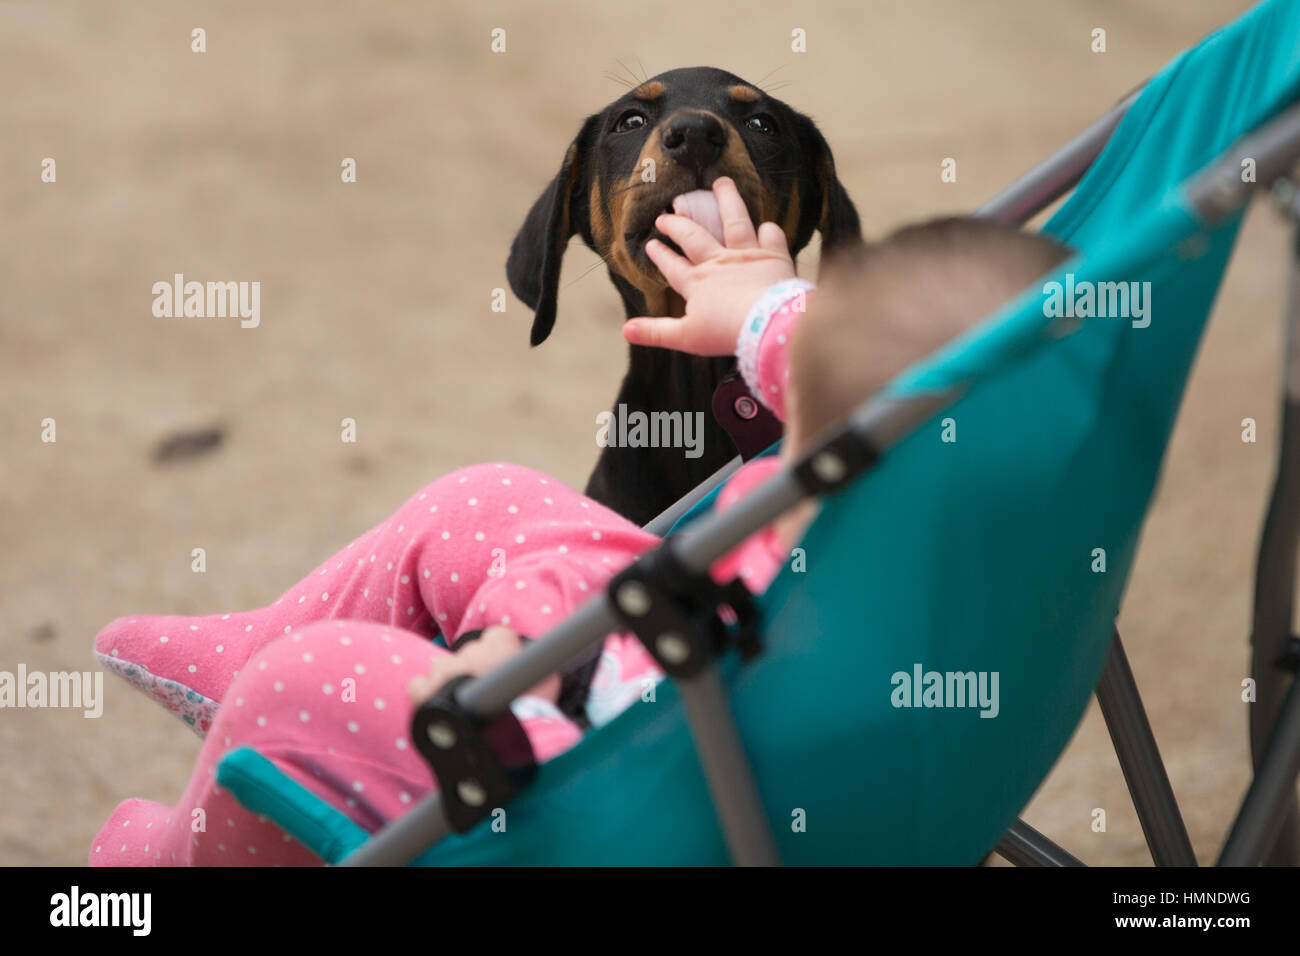 A curious puppy takes notice of an infant's outreached hand. - Stock Image